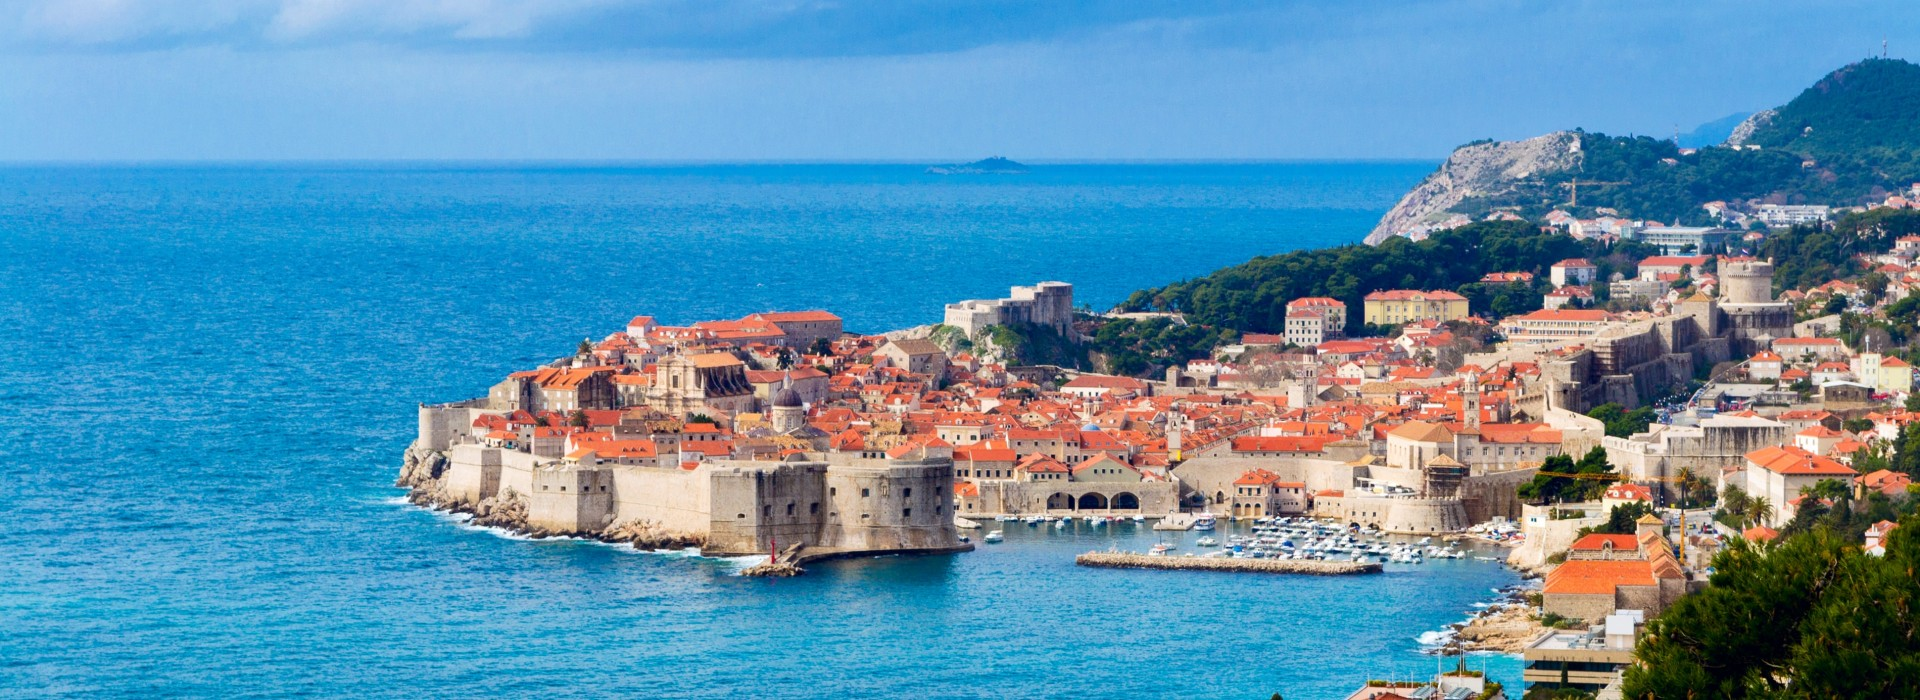 Travelling Croatia - Tours and Trips in Croatia